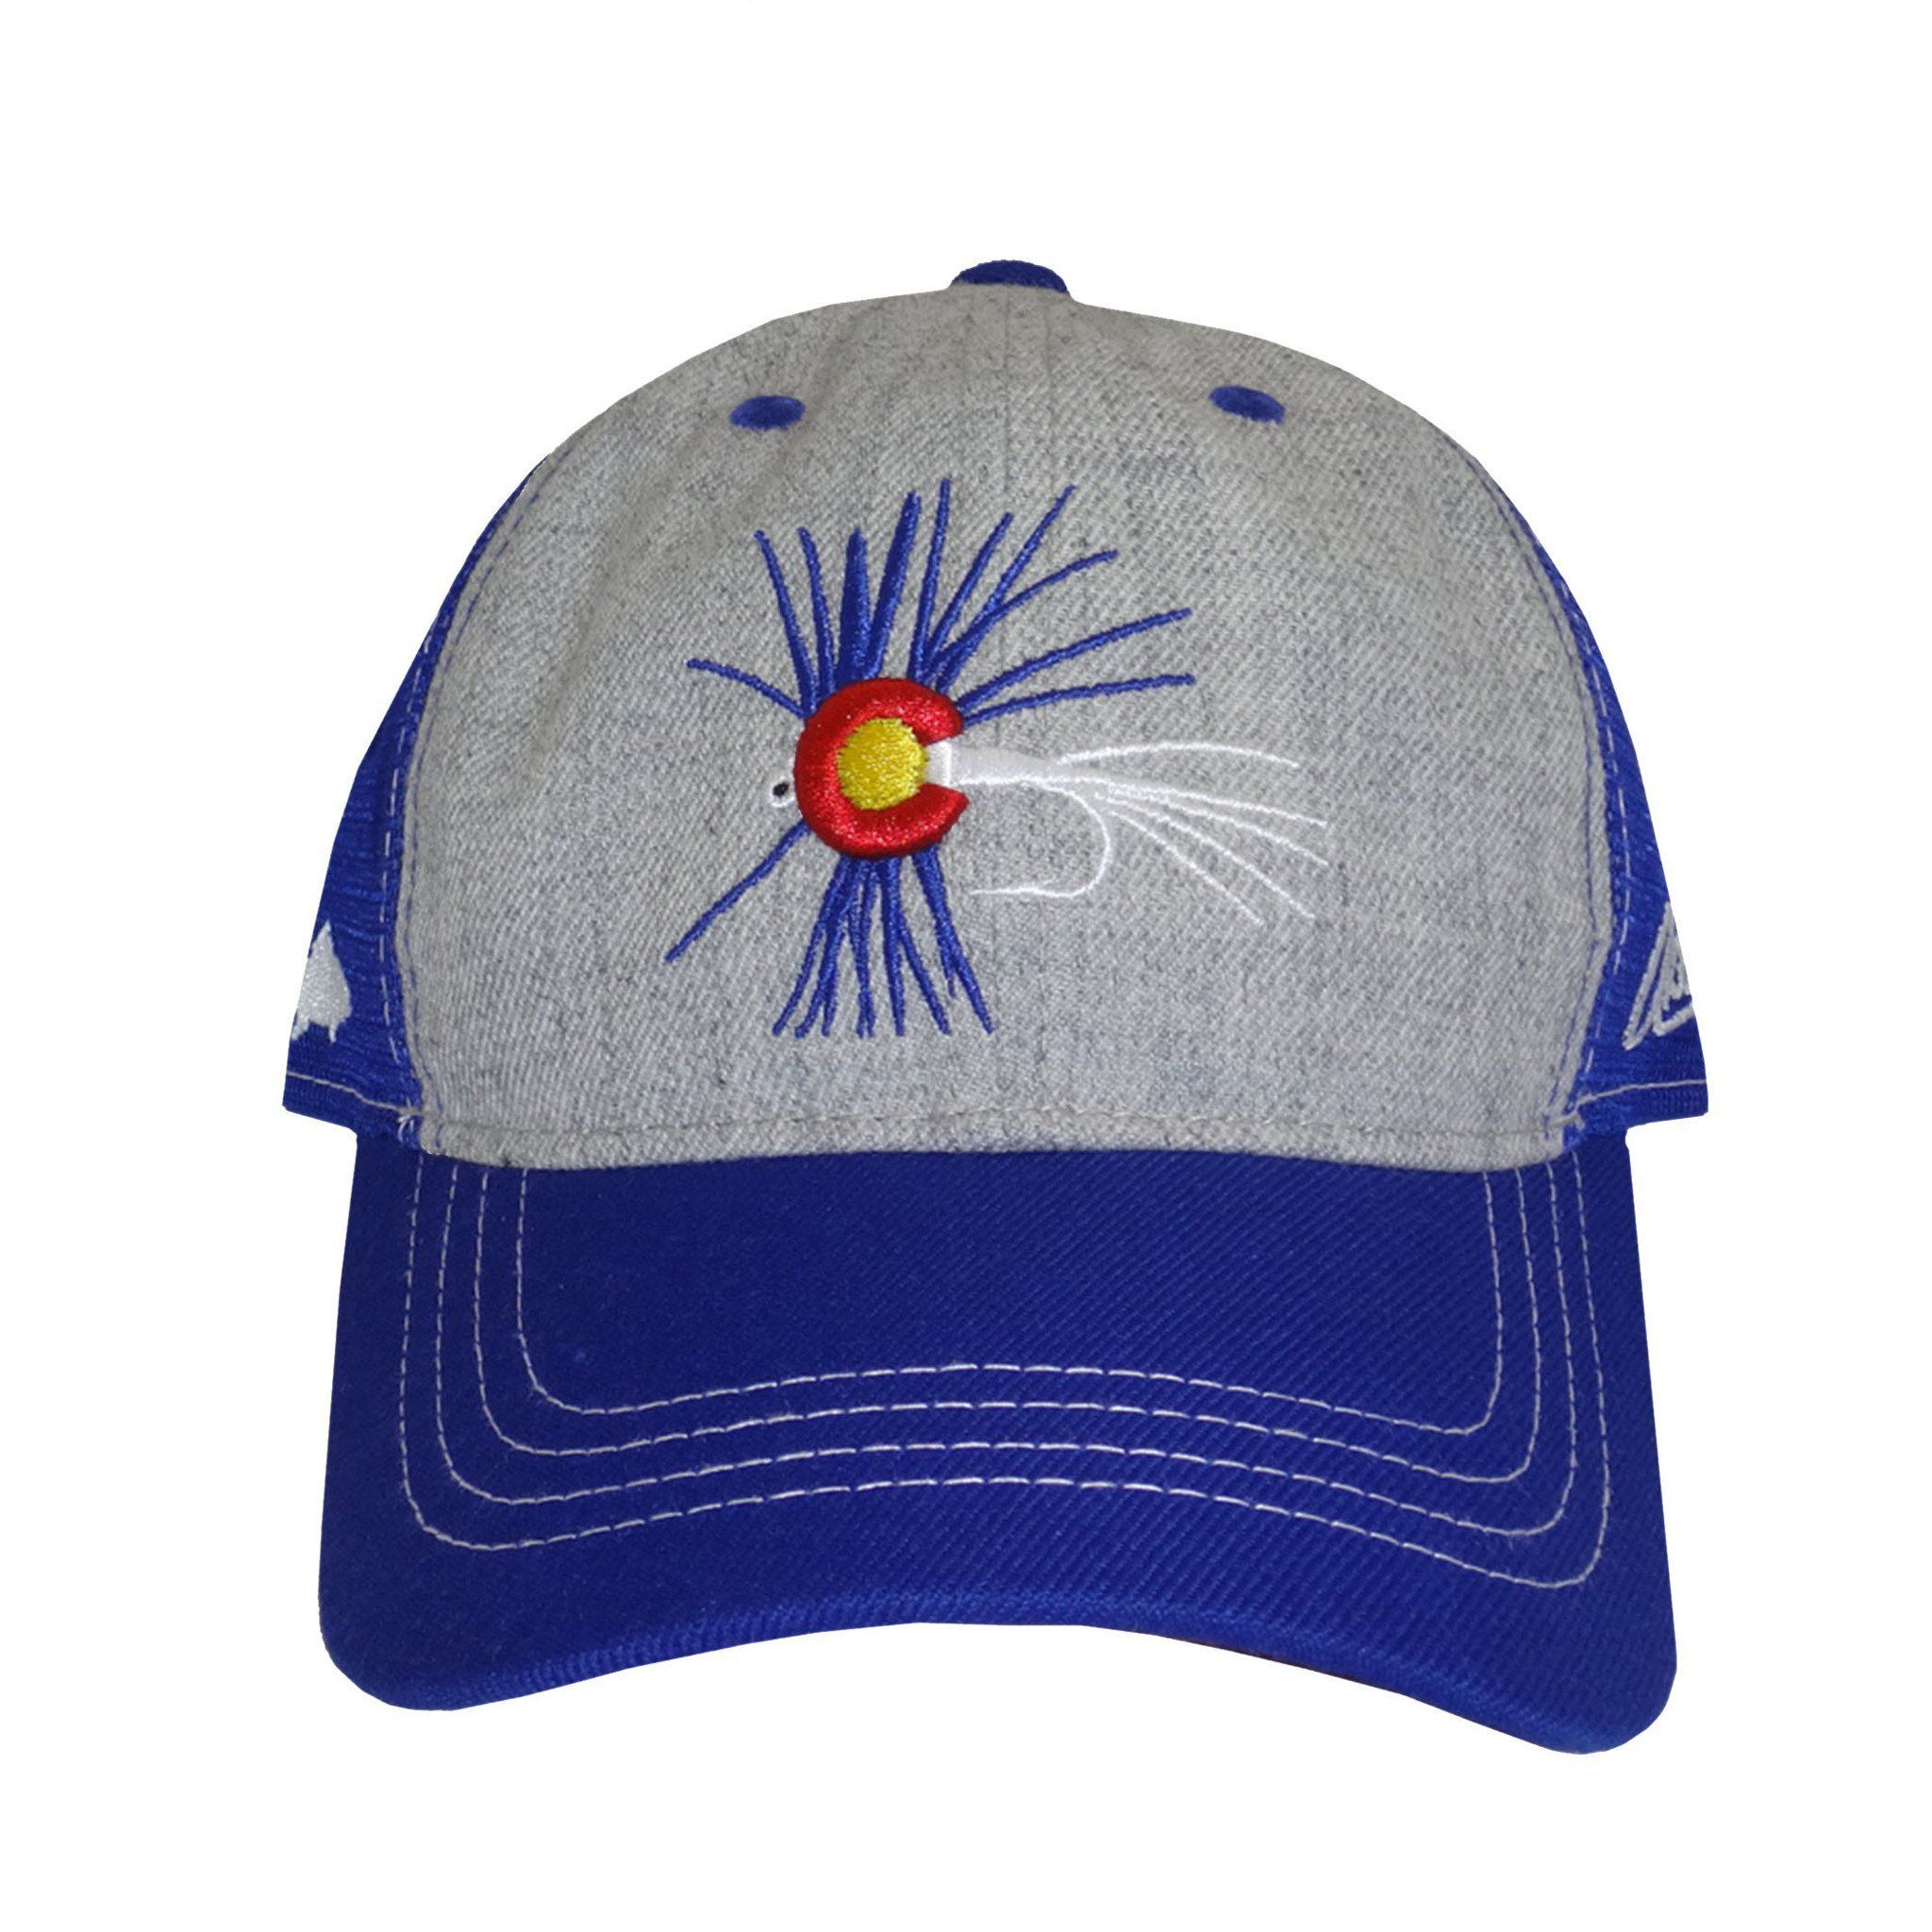 Colorado Fly Fishing Curved Bill Hat - Grey  FlyFishing ... da25b2a306ce